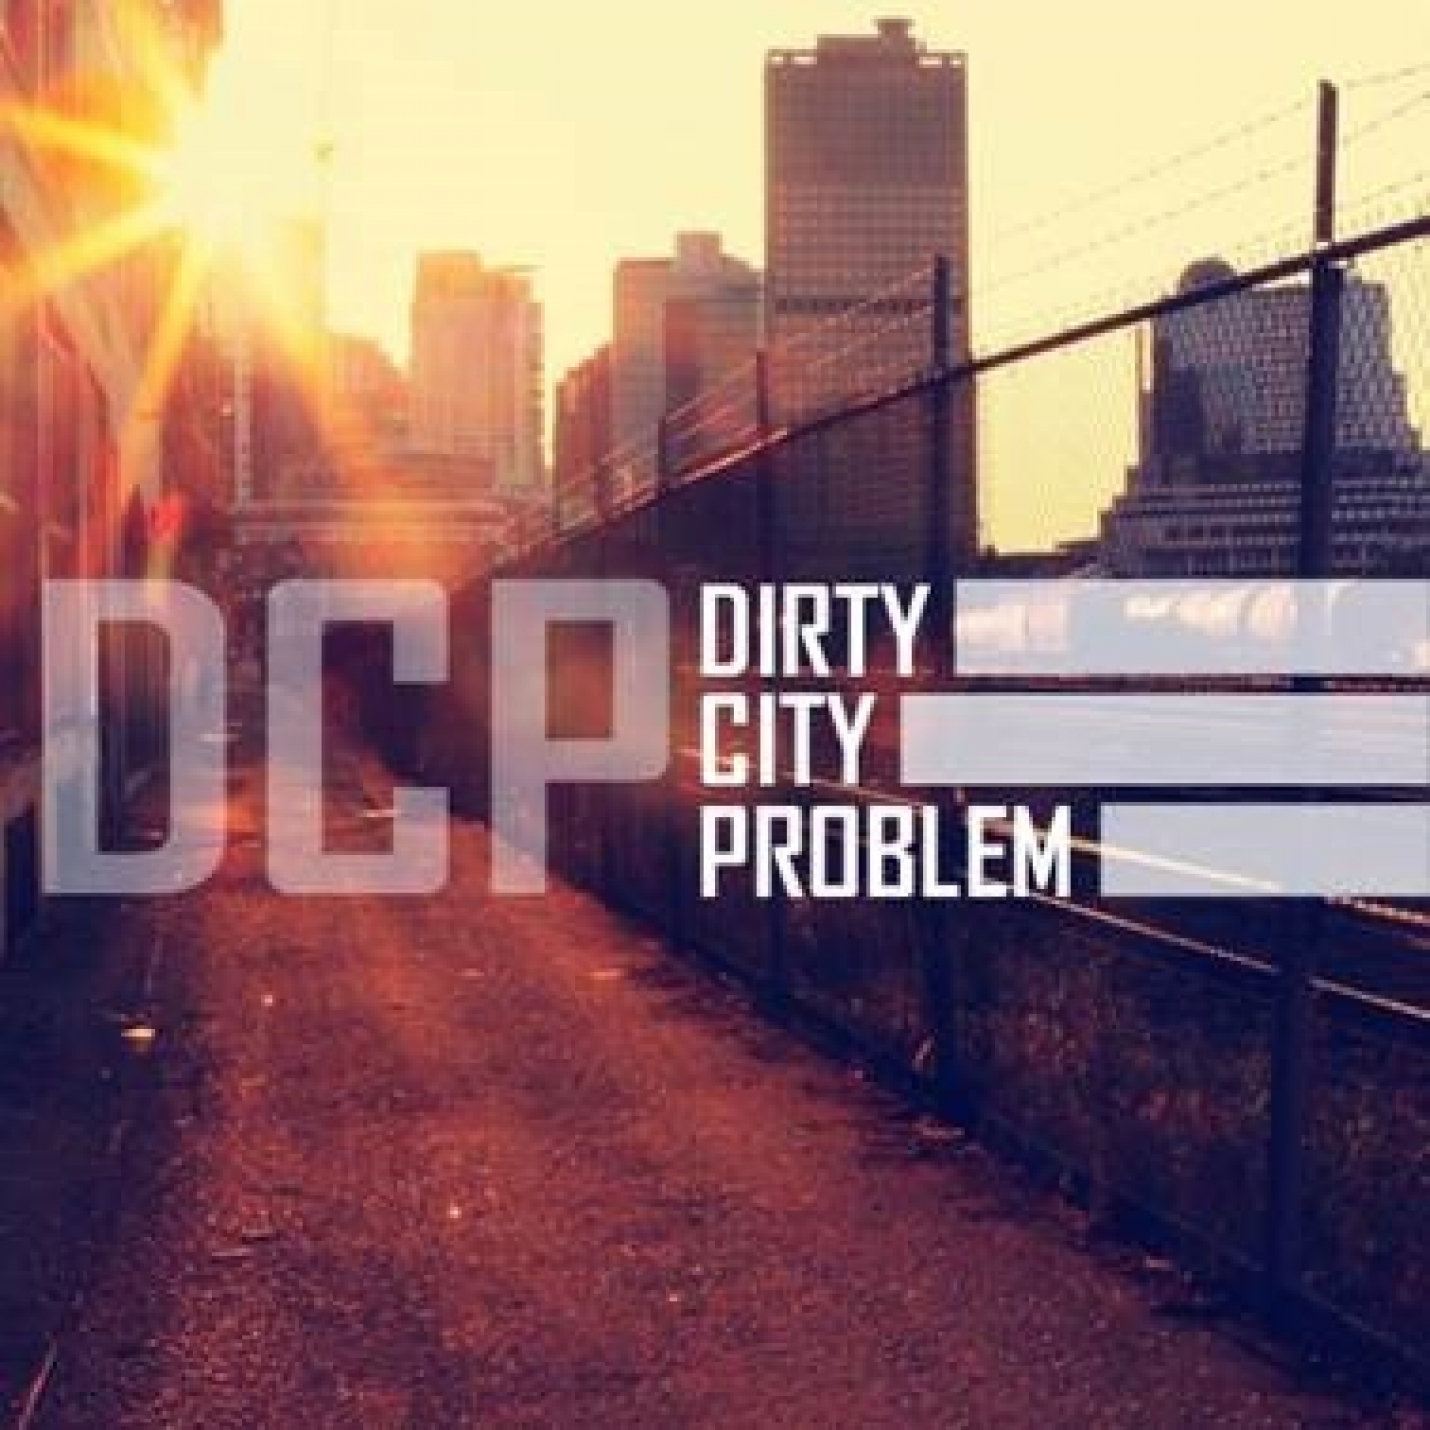 NEW RELEASE: Red Tape Riot - Dirty City Problem